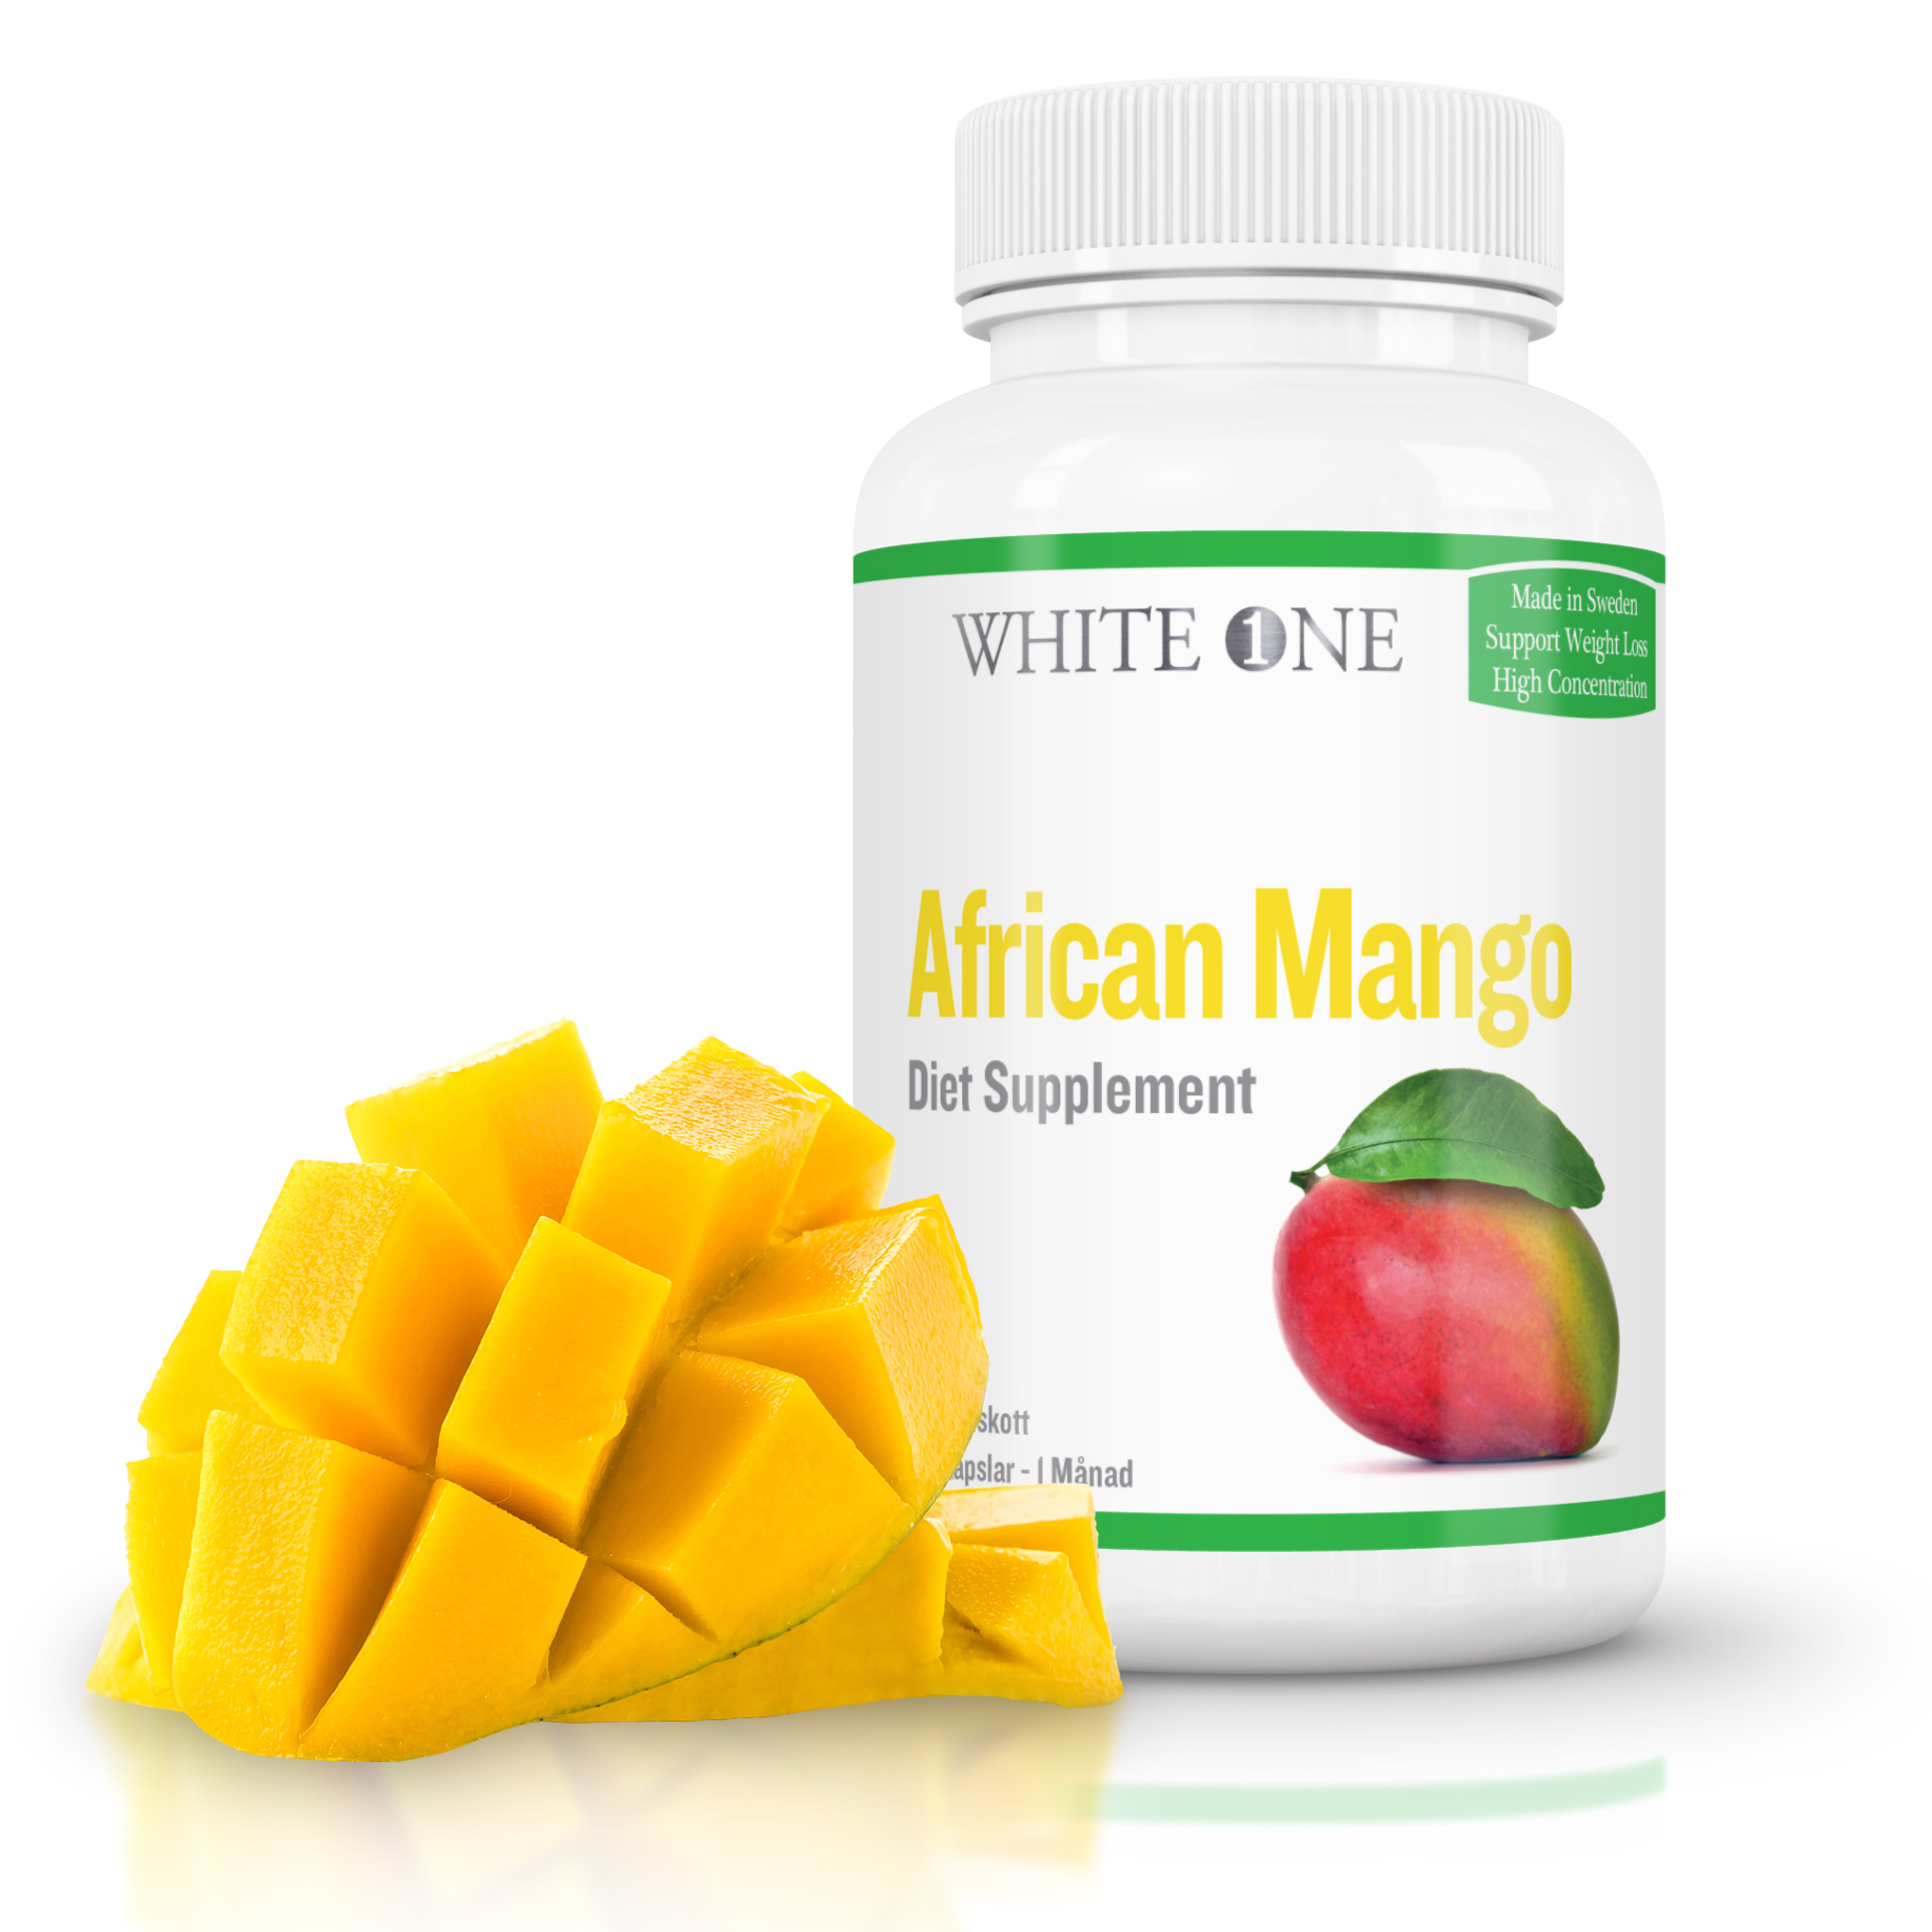 African Mango Supplement Effective Results